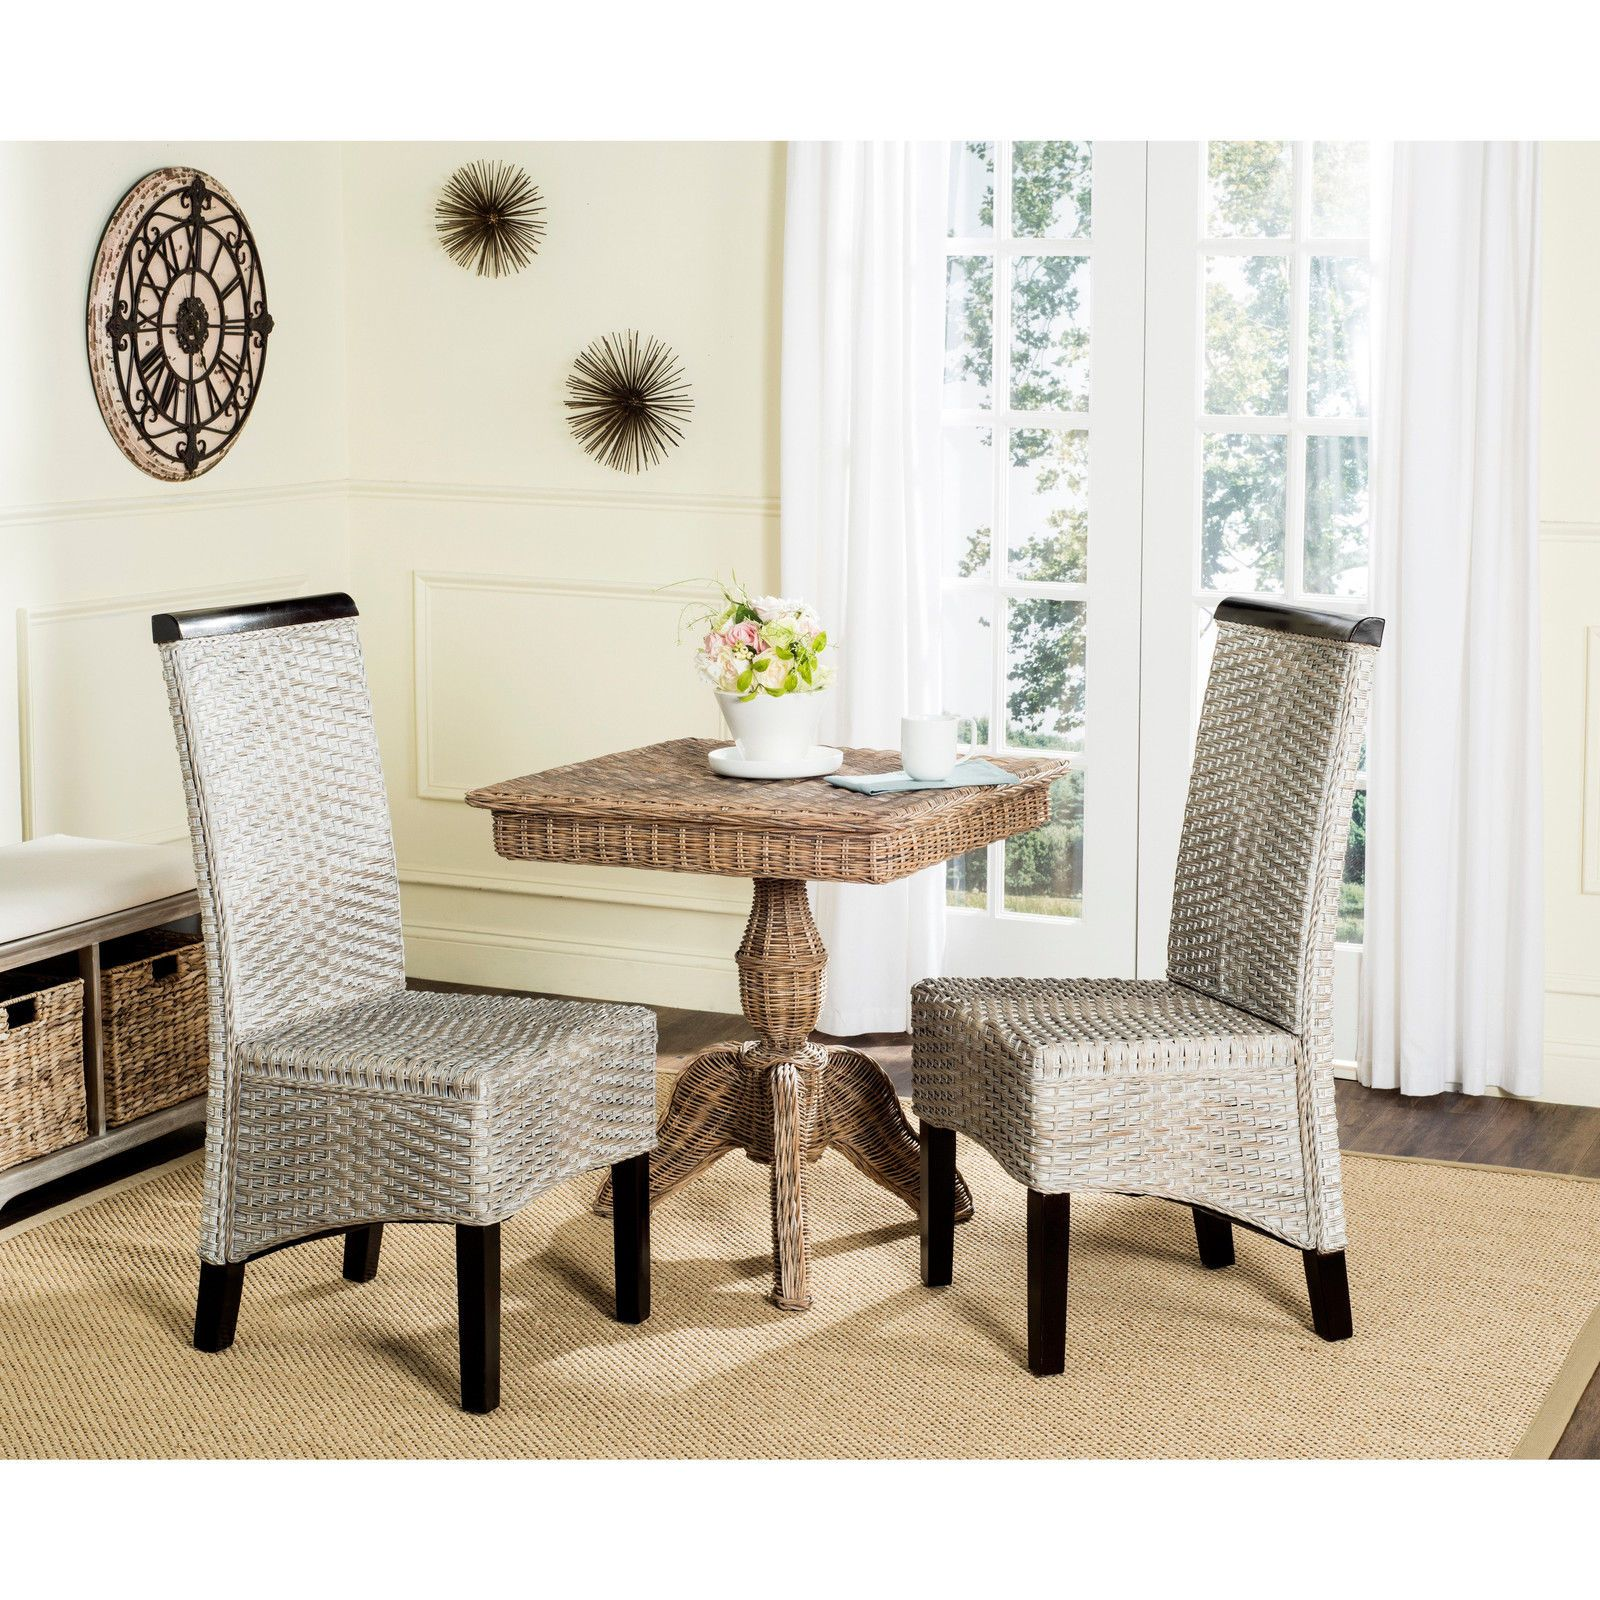 Safavieh Rural Woven Dining Ilya Antique Grey Wicker Side Chairs Endearing Side Chairs Dining Room Design Inspiration